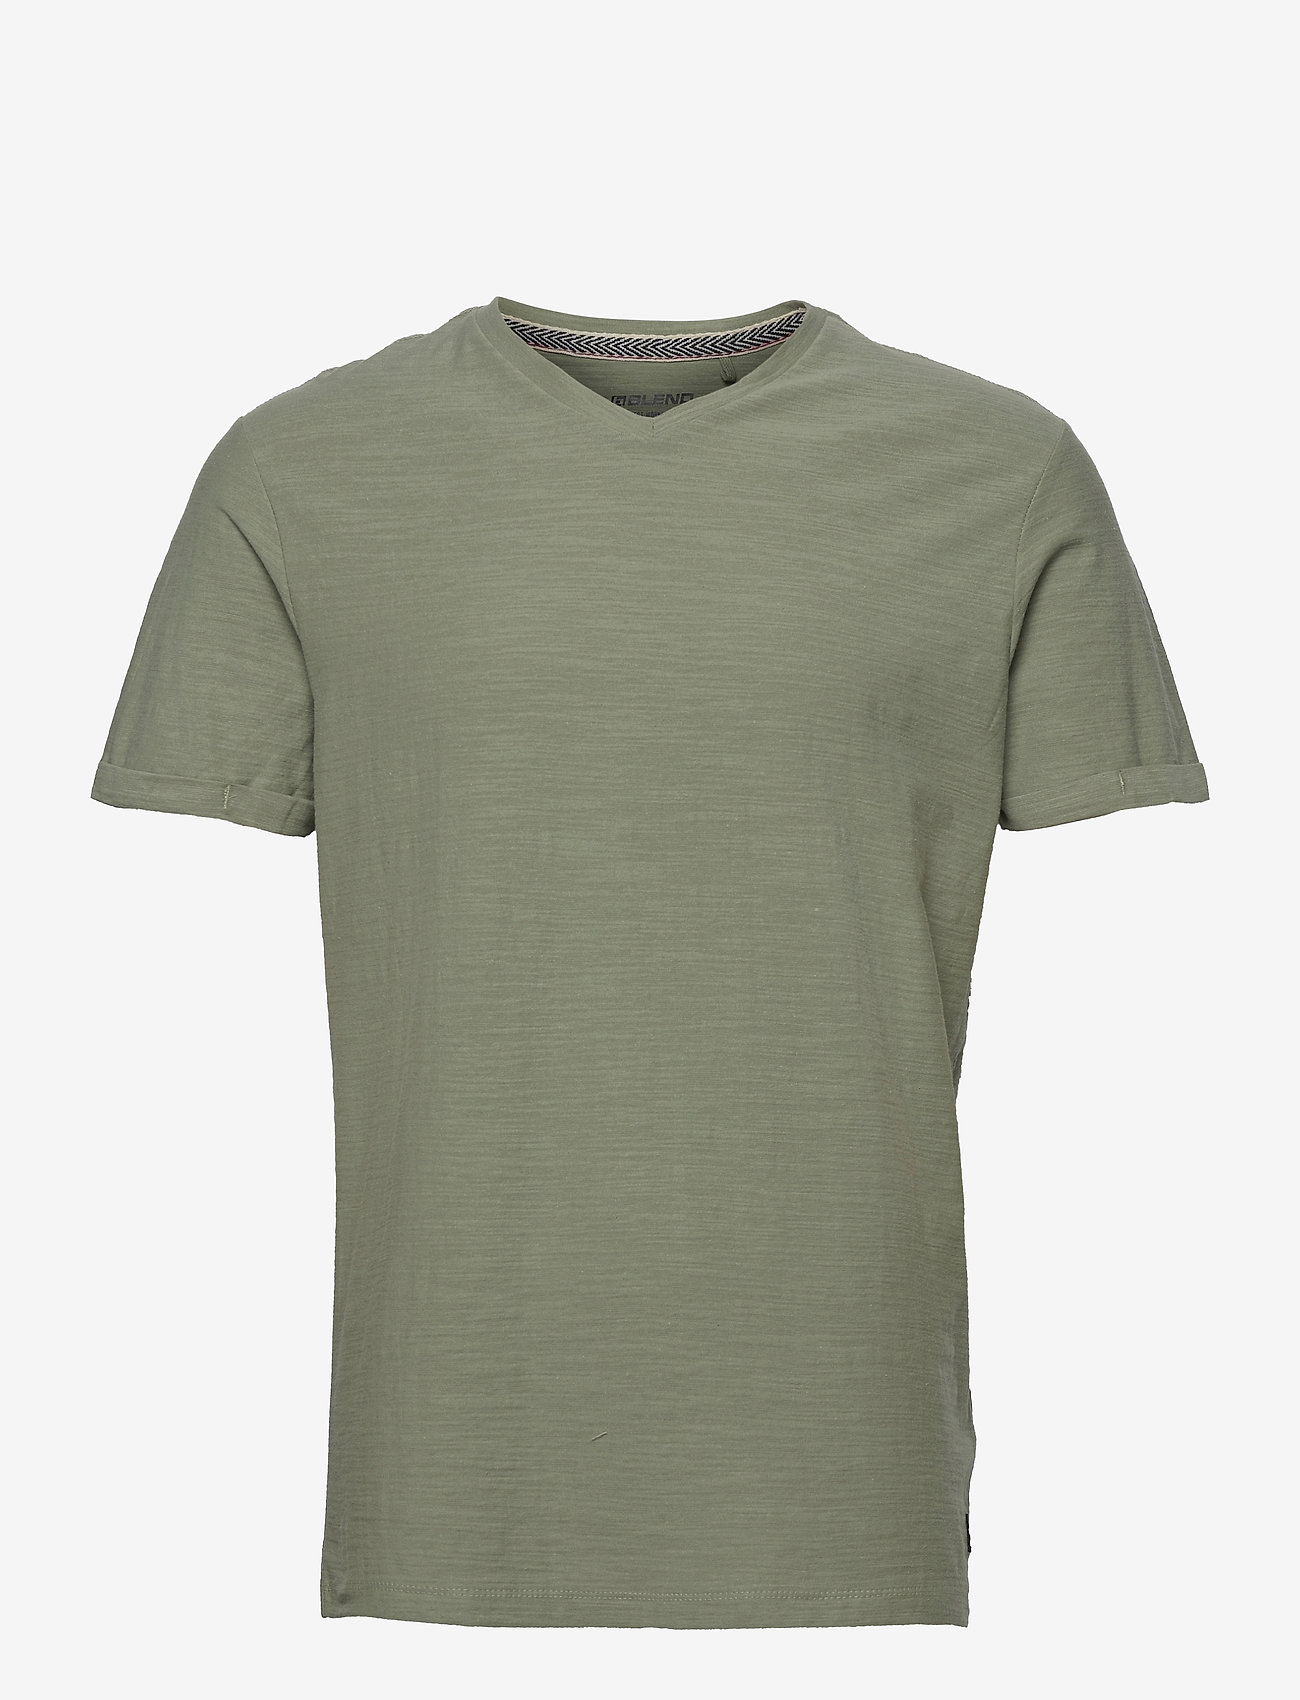 Blend - Tee - basic t-shirts - oil green - 0